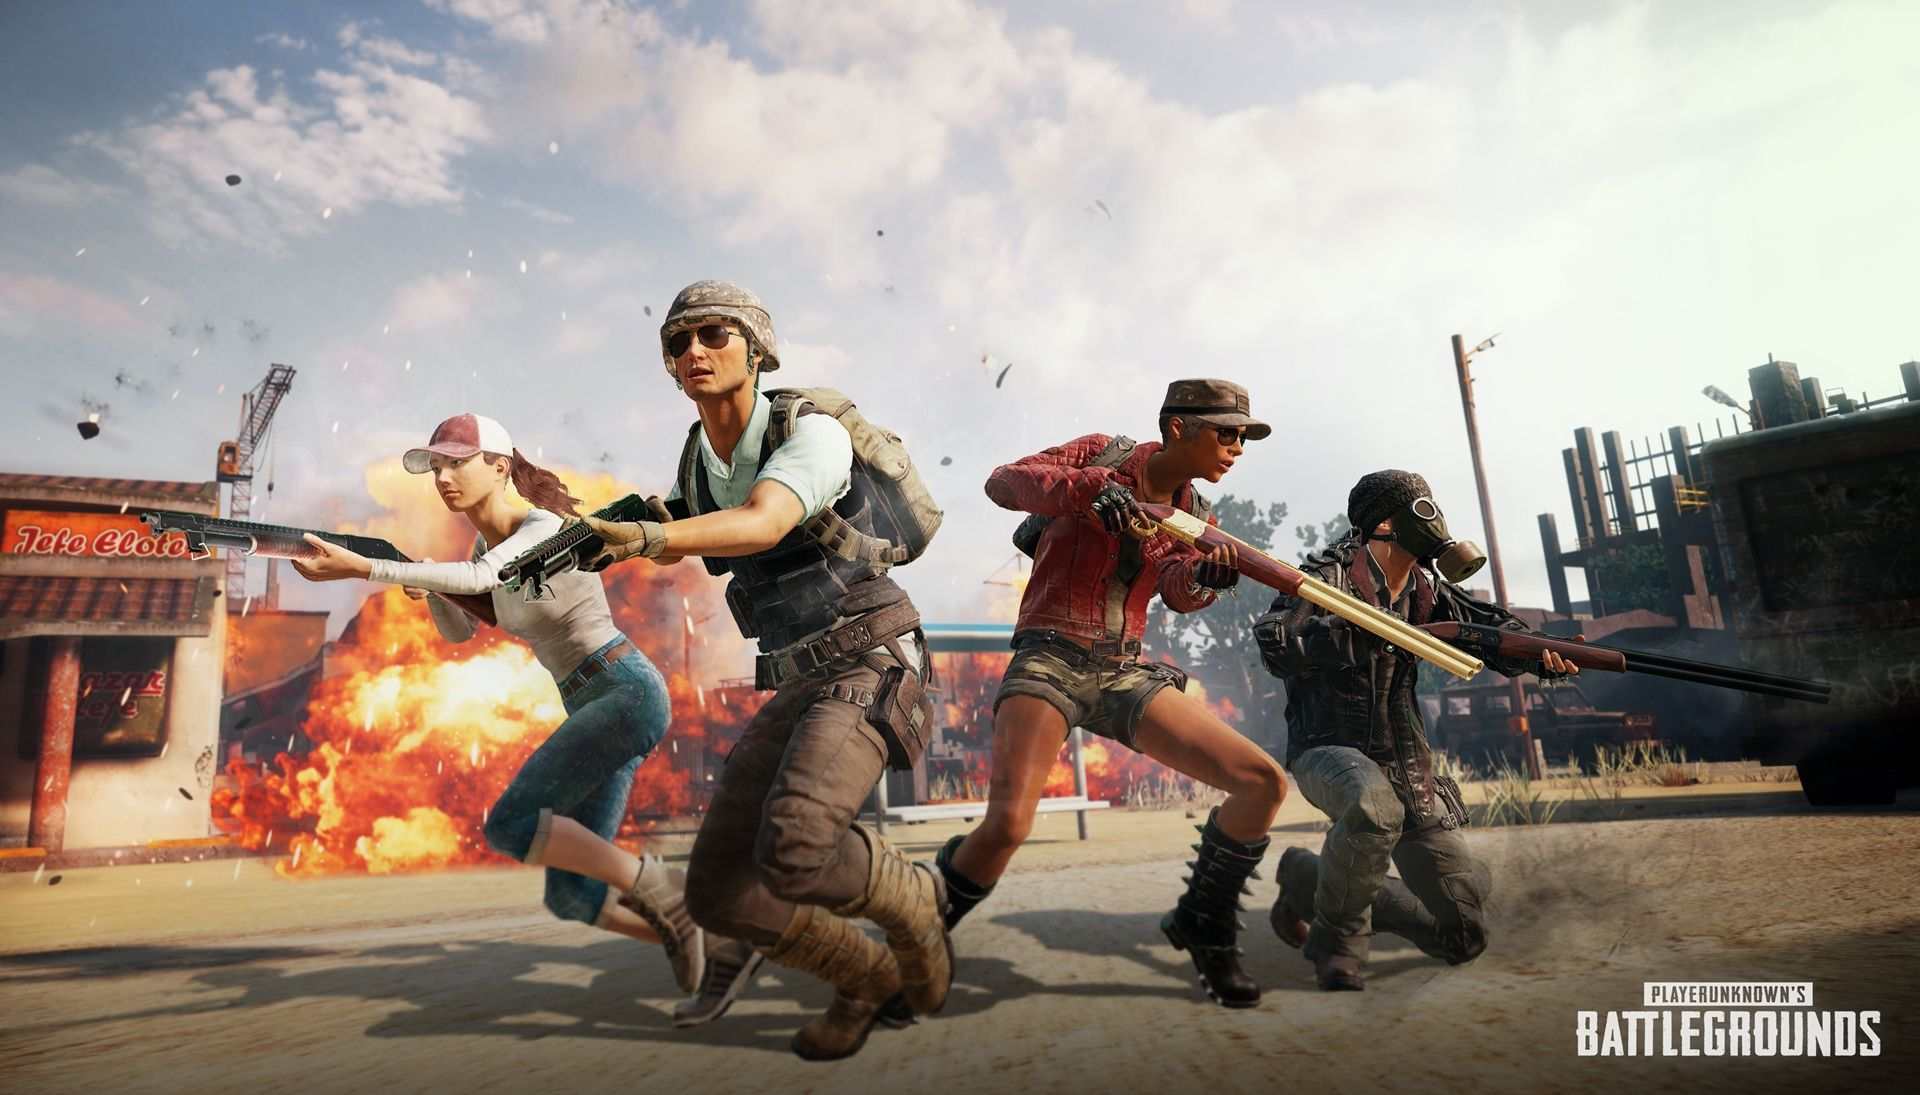 Intel and ESL have pushed PUBG into esports (Image: Bluehole)